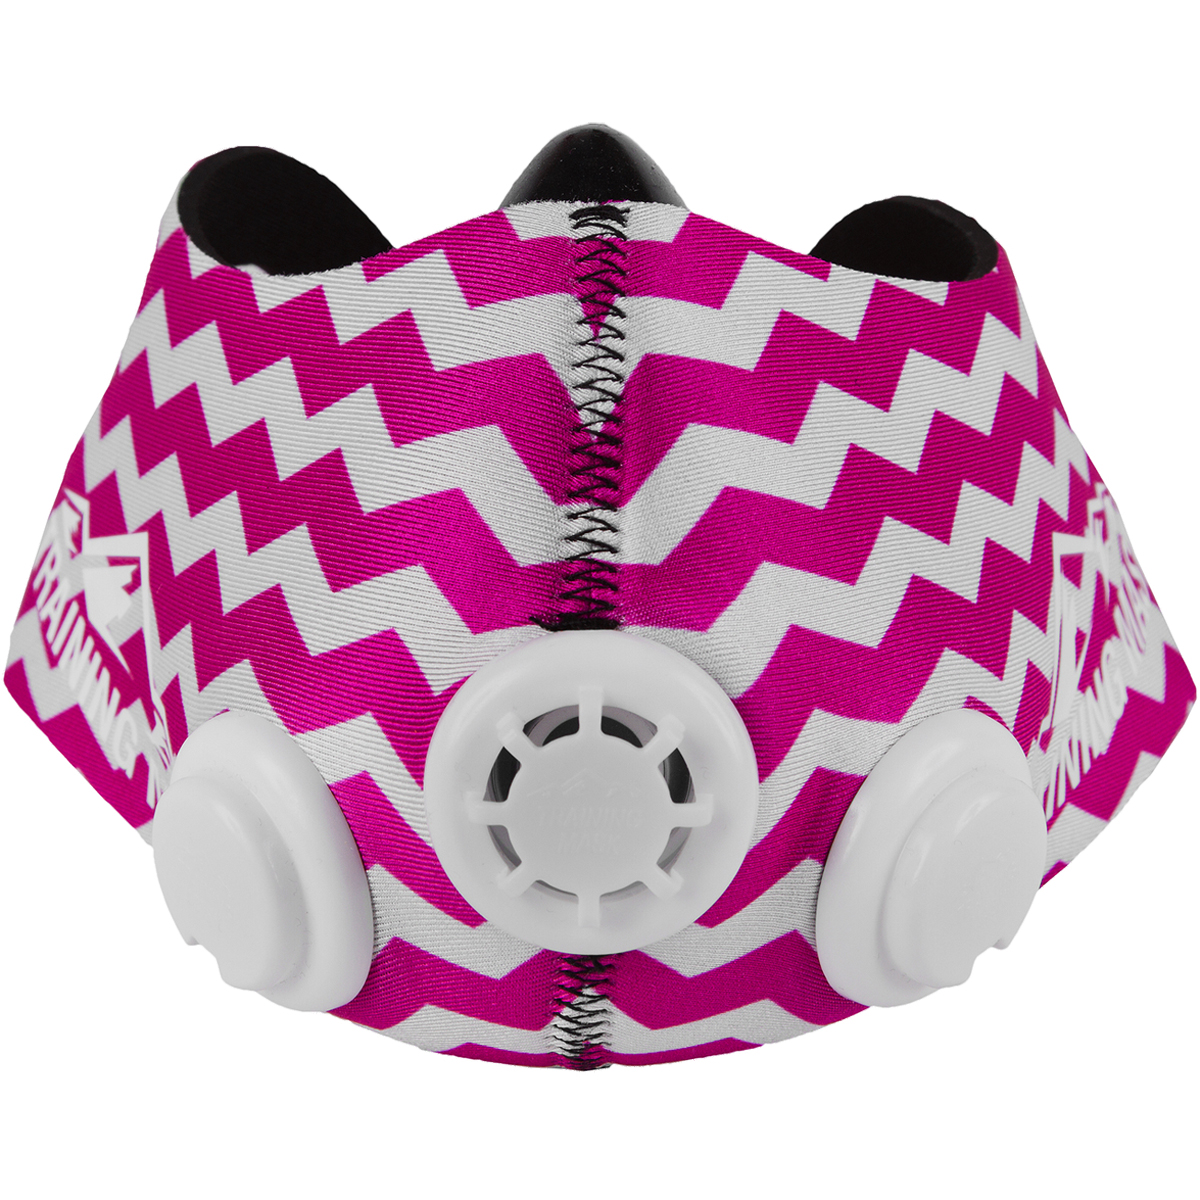 Elevation Training Mask 2.0 Chevron3 Sleeve Only